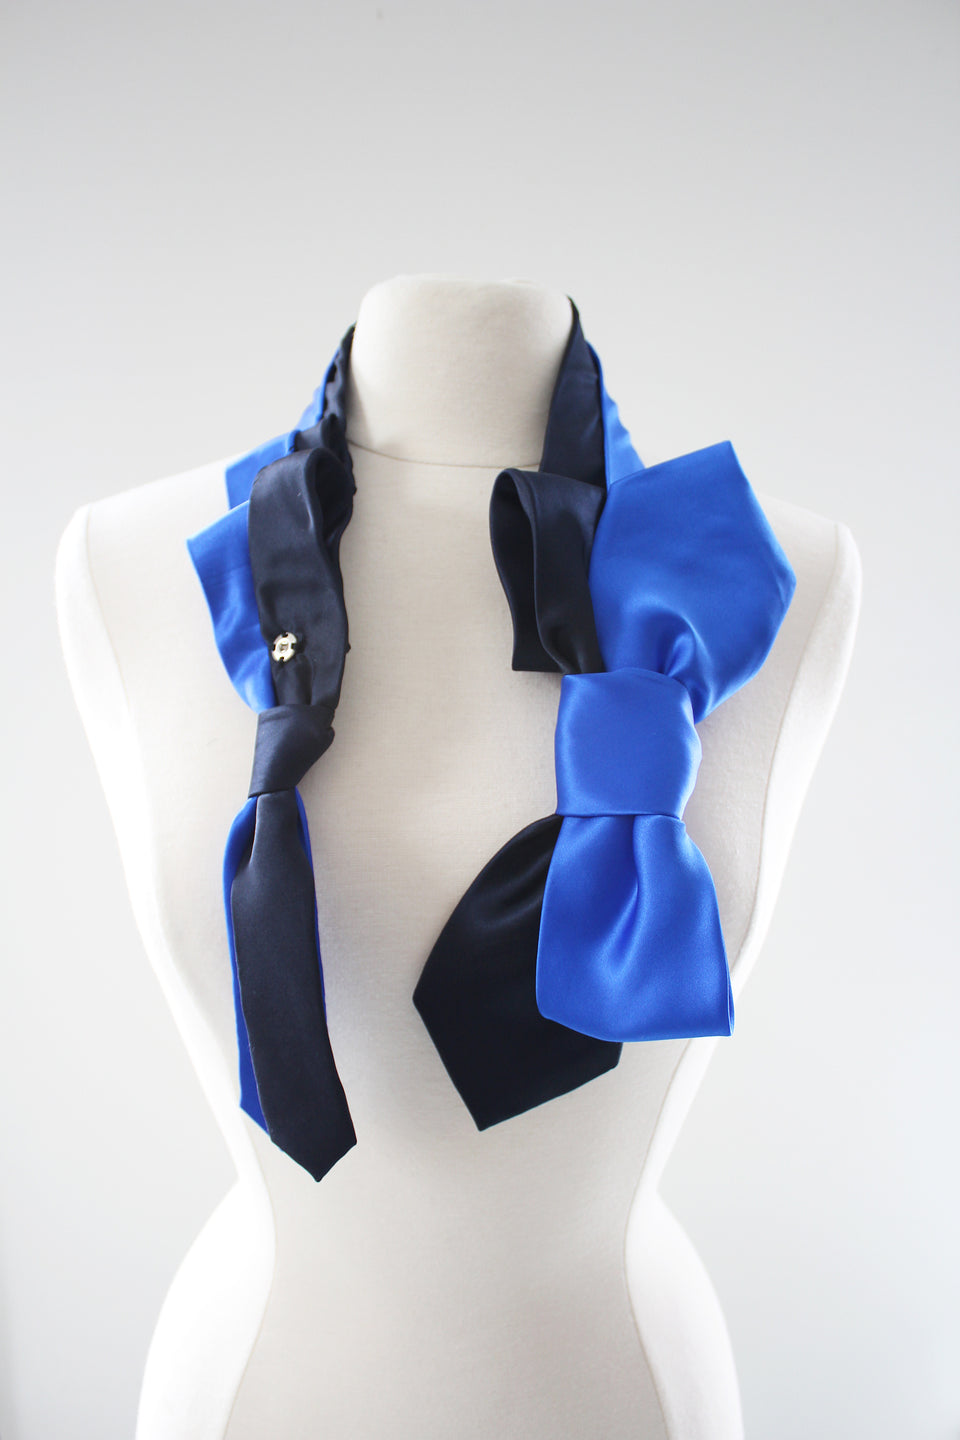 Lilian Asterfield Satin Birdie Bow Tie - Navy and Royal Blue